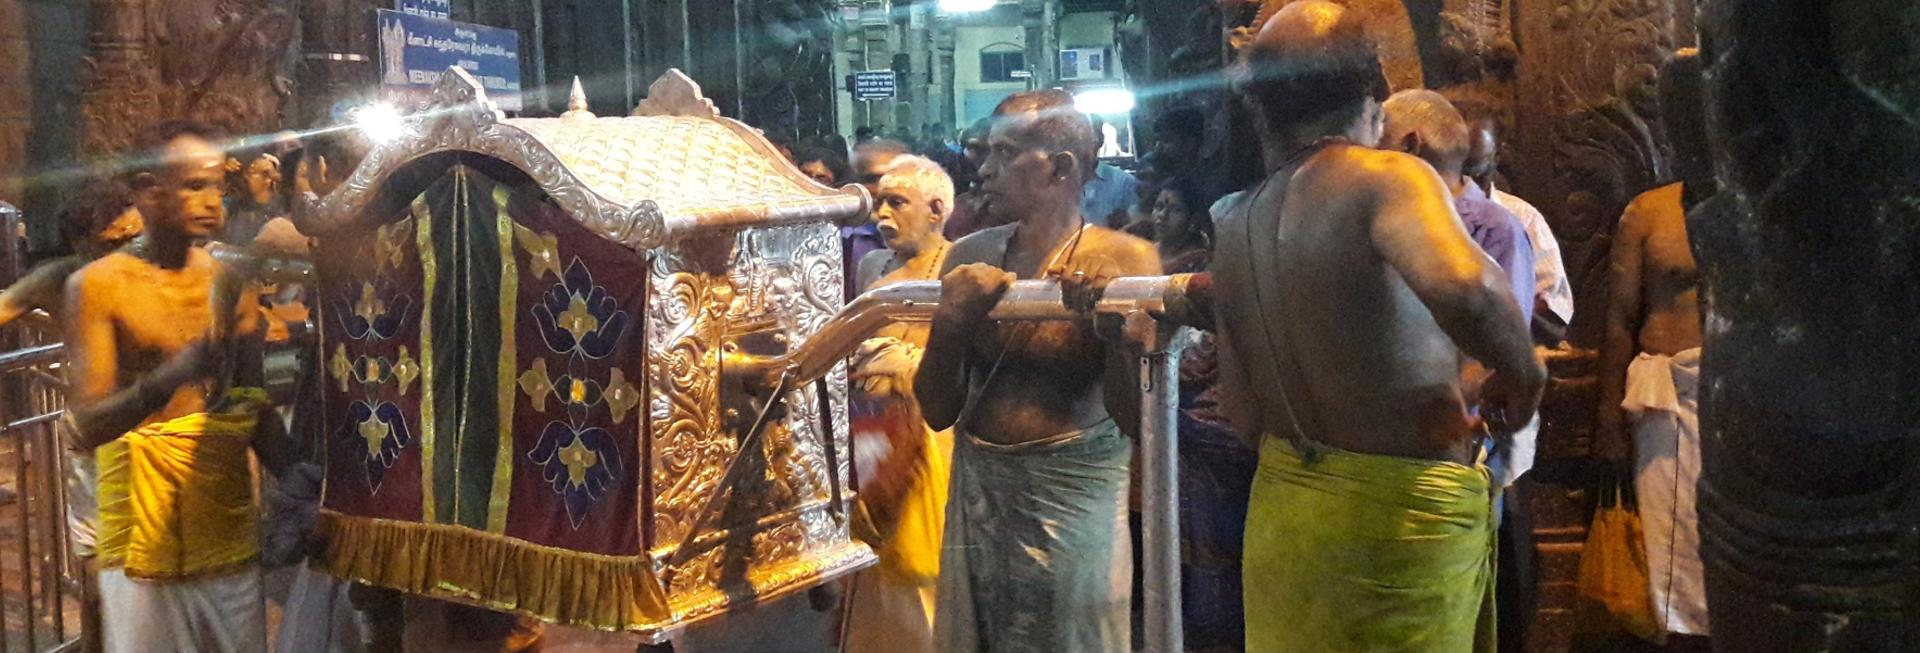 Putting to bed ceremony at Meenakshi, Madurai